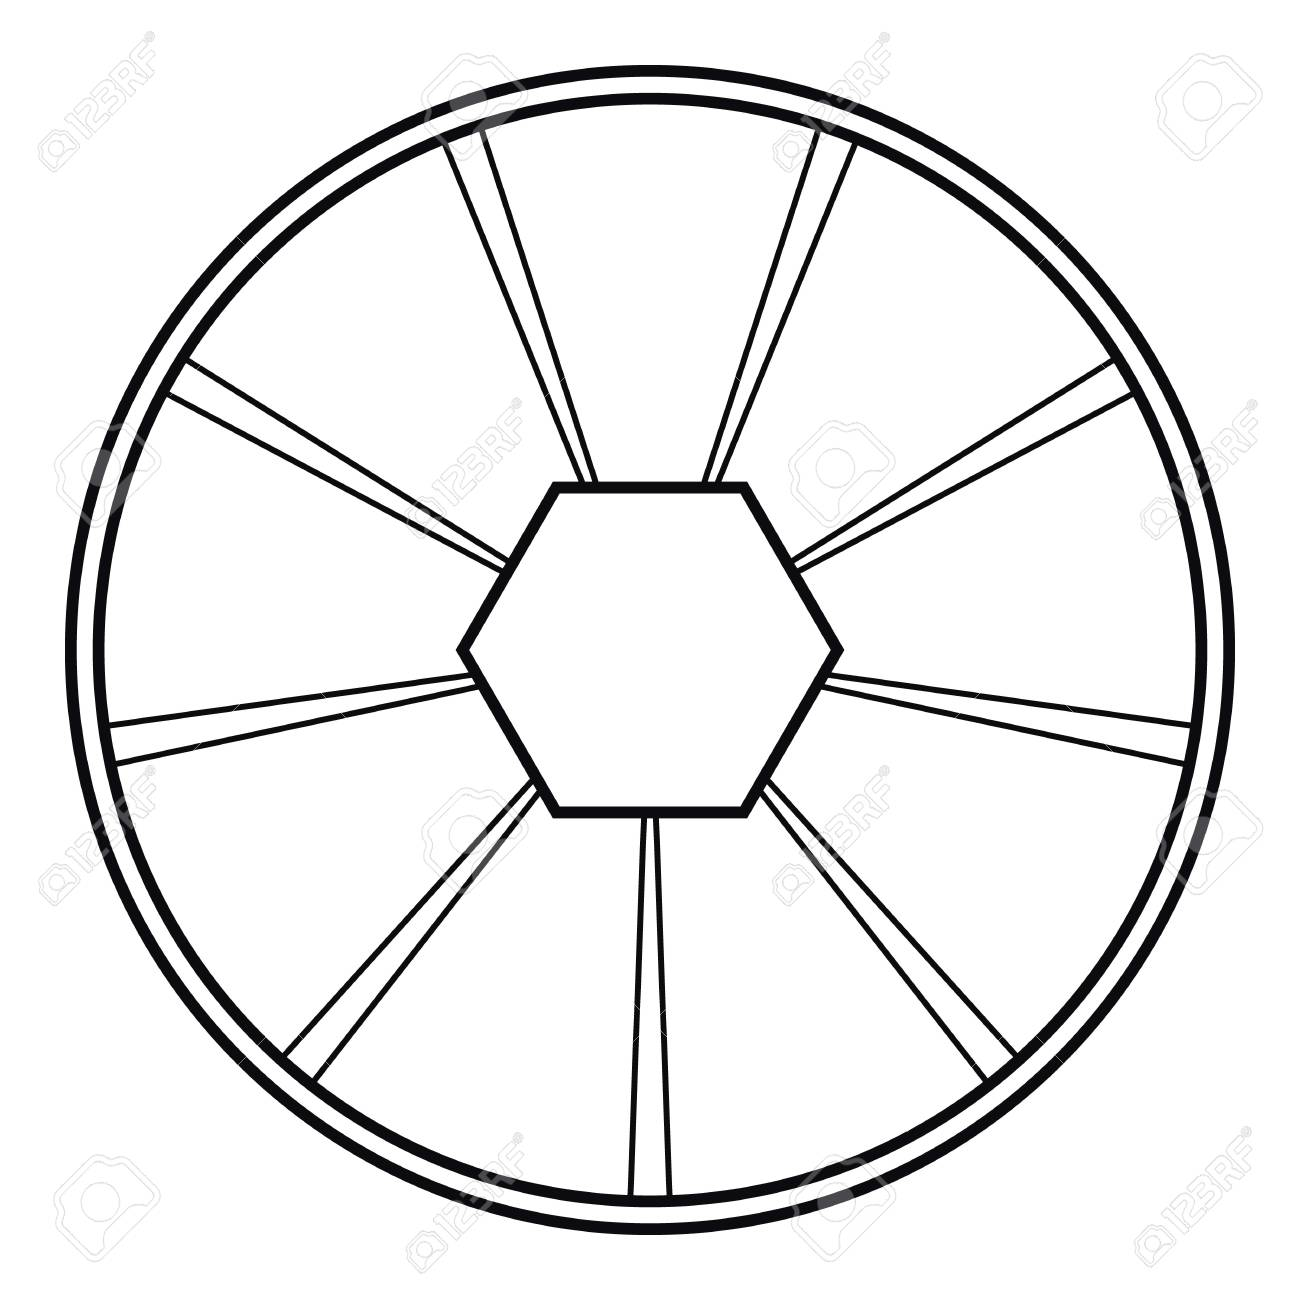 round diagram icon outline illustration of round diagram vector Checklist Icon round diagram icon outline illustration of round diagram vector icon for web stock vector